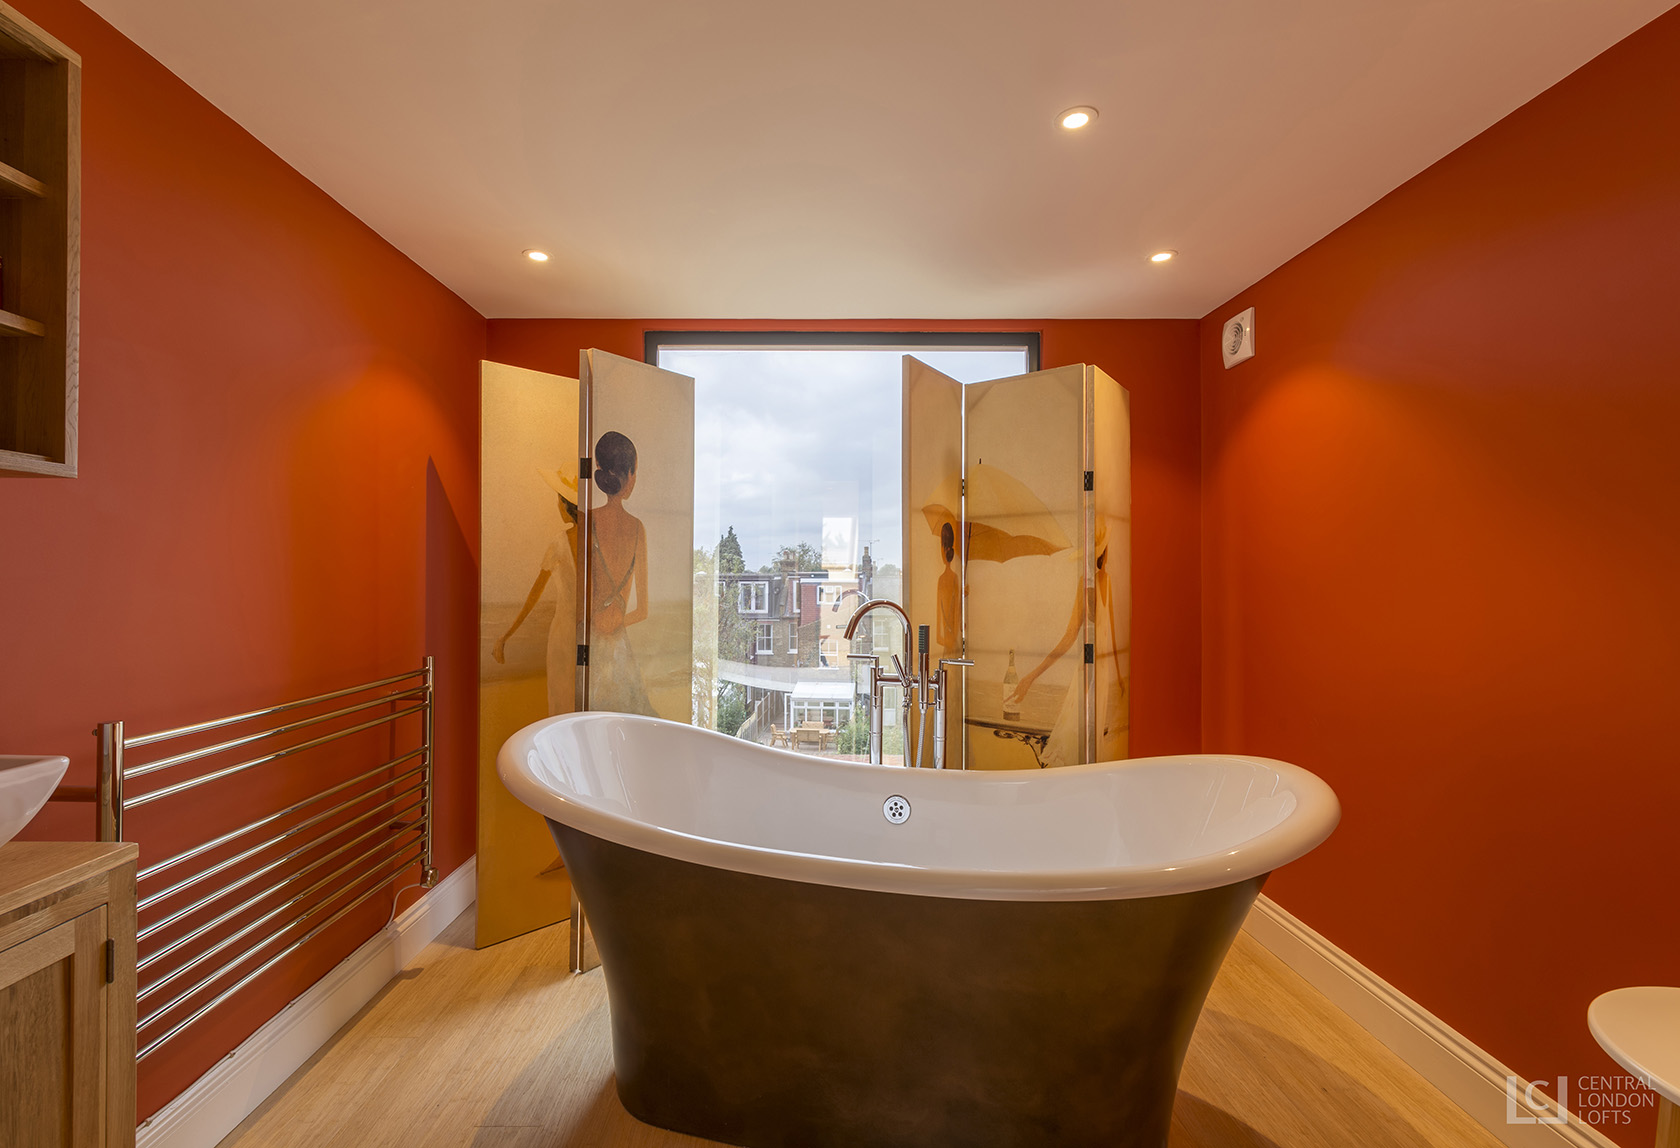 Walthamstow Loft Conversion Central London Lofts